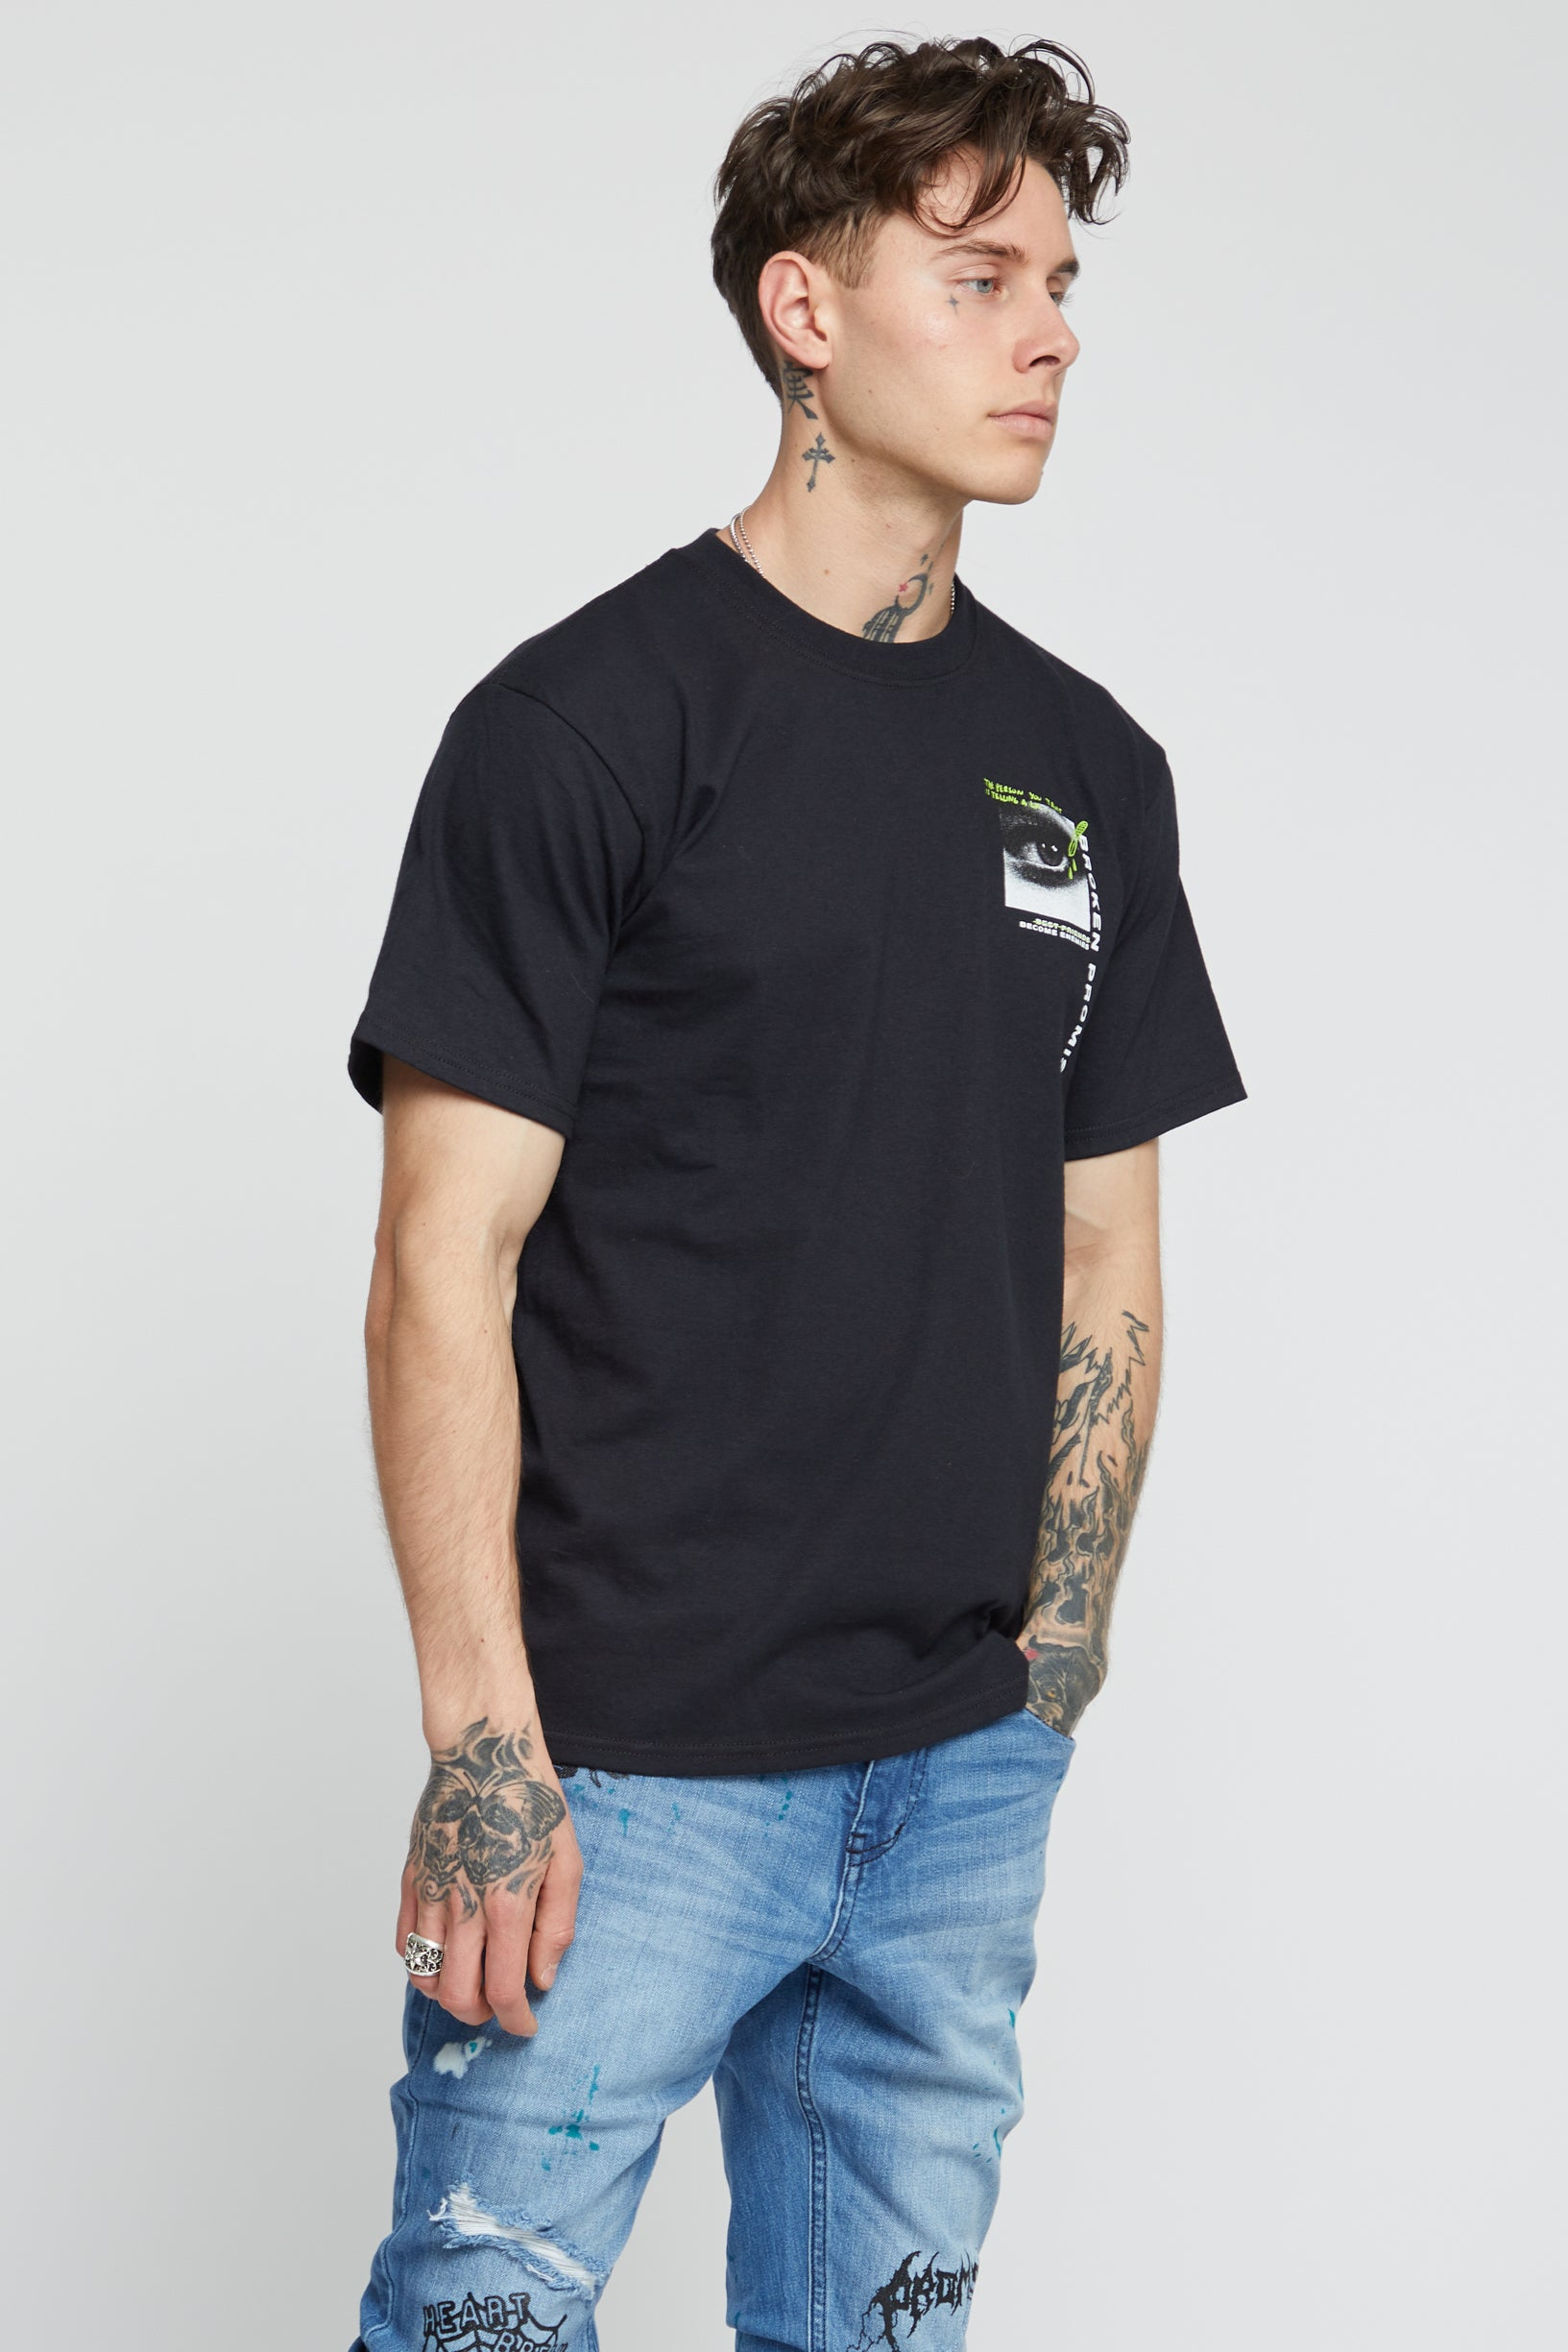 Deception Black SS Tee